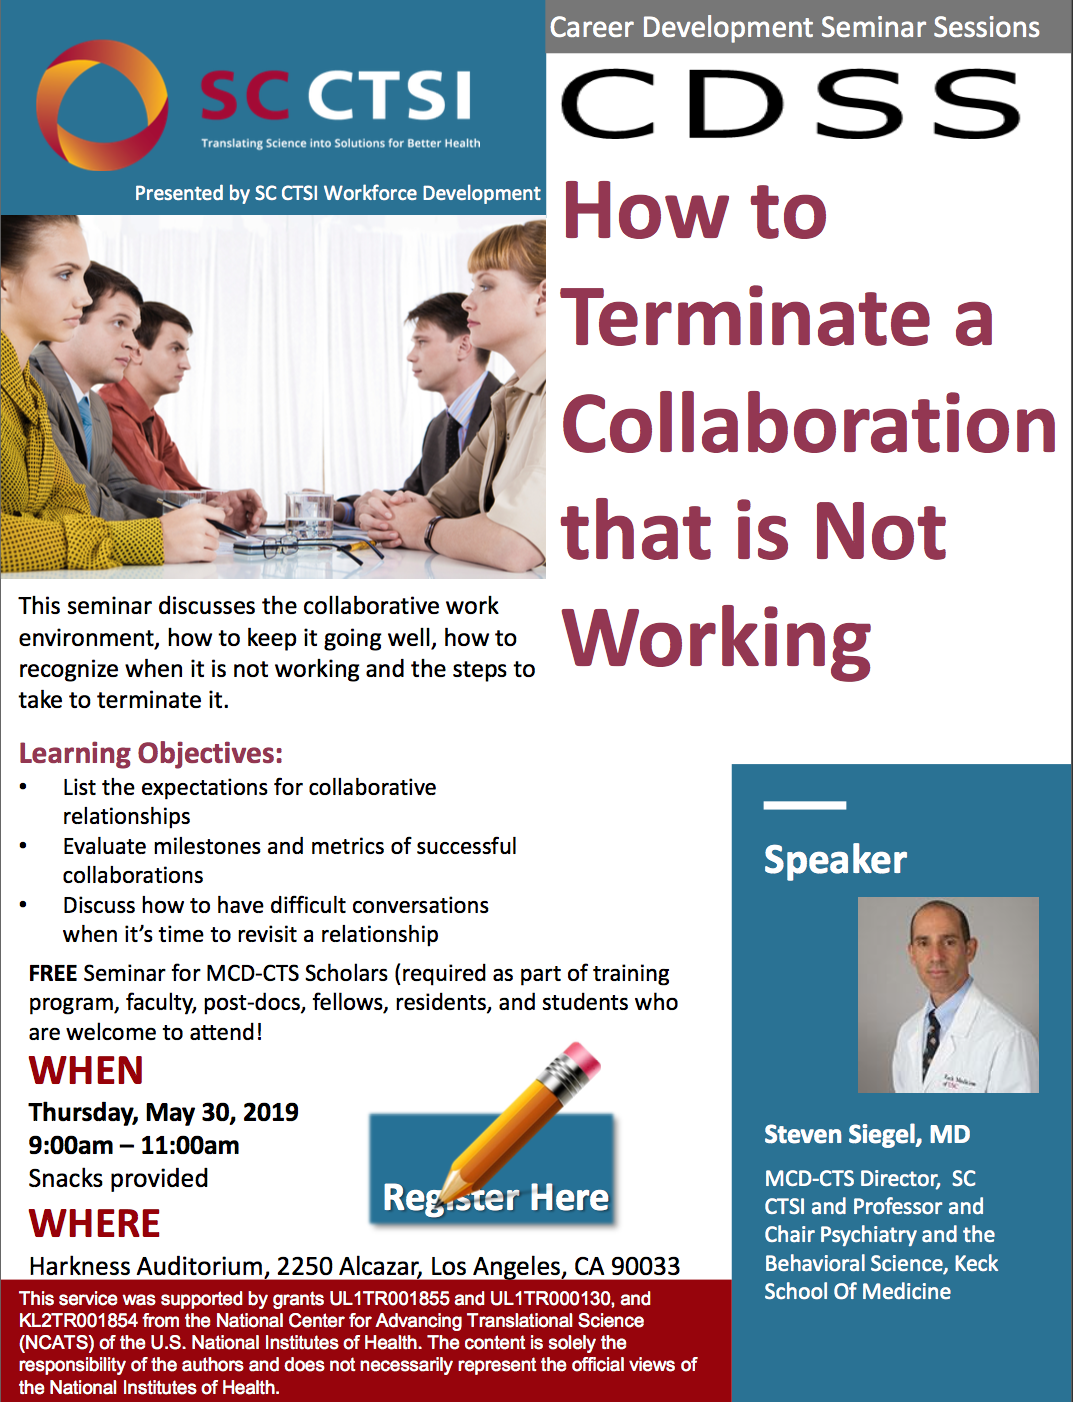 How-to-Terminate-a-Collaboration-5-30-19v3.png#asset:4880